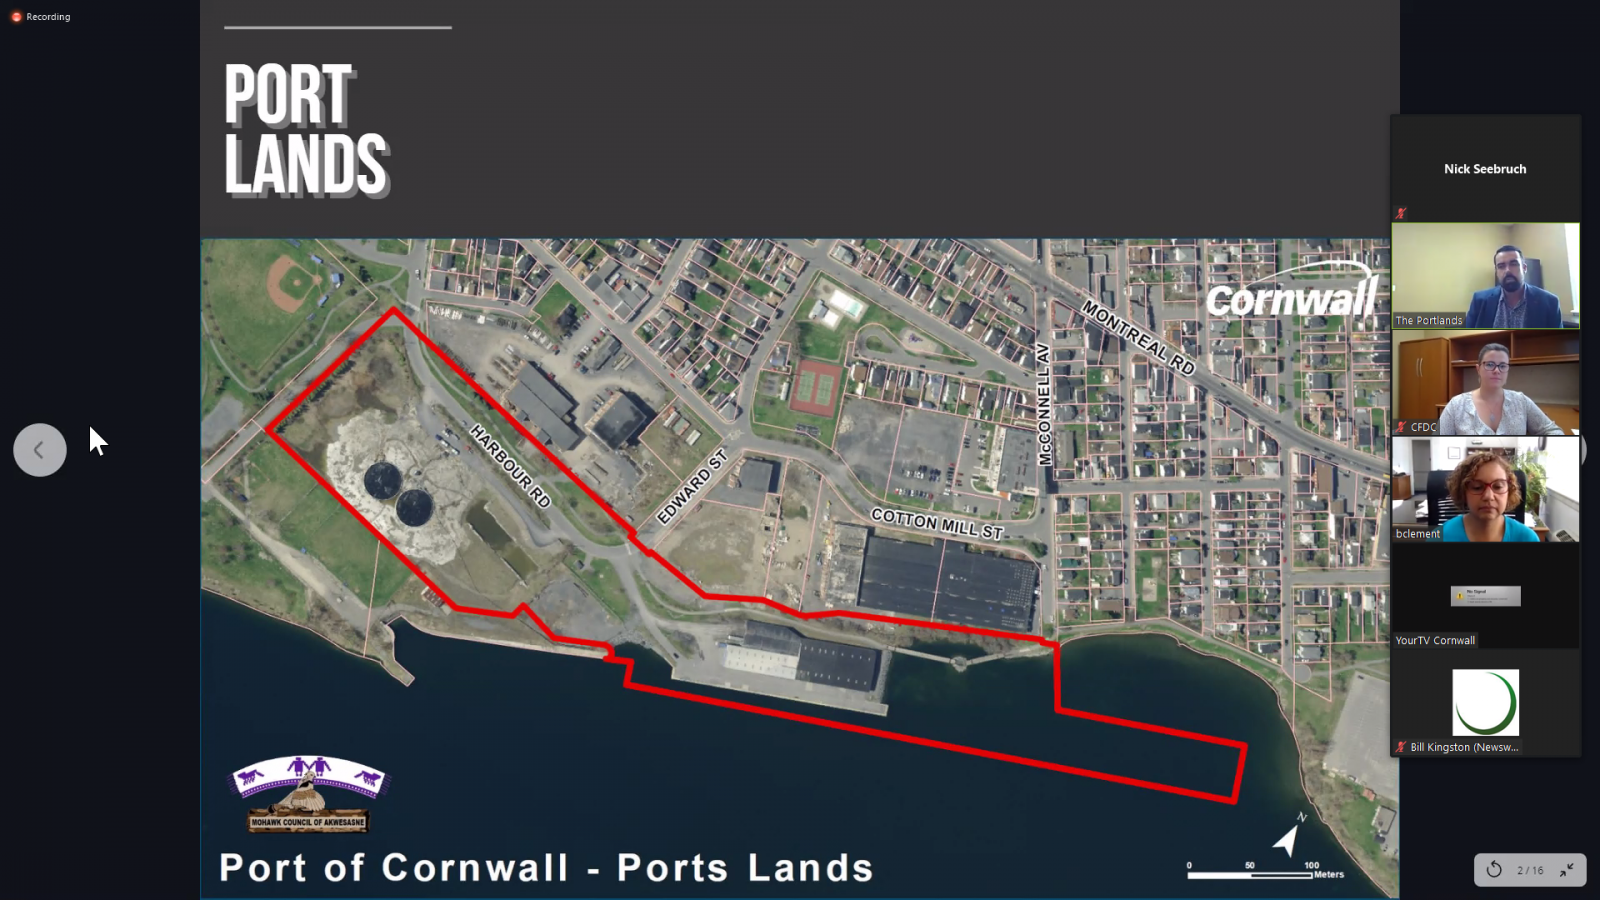 Portlands project gets new manager, moves forward